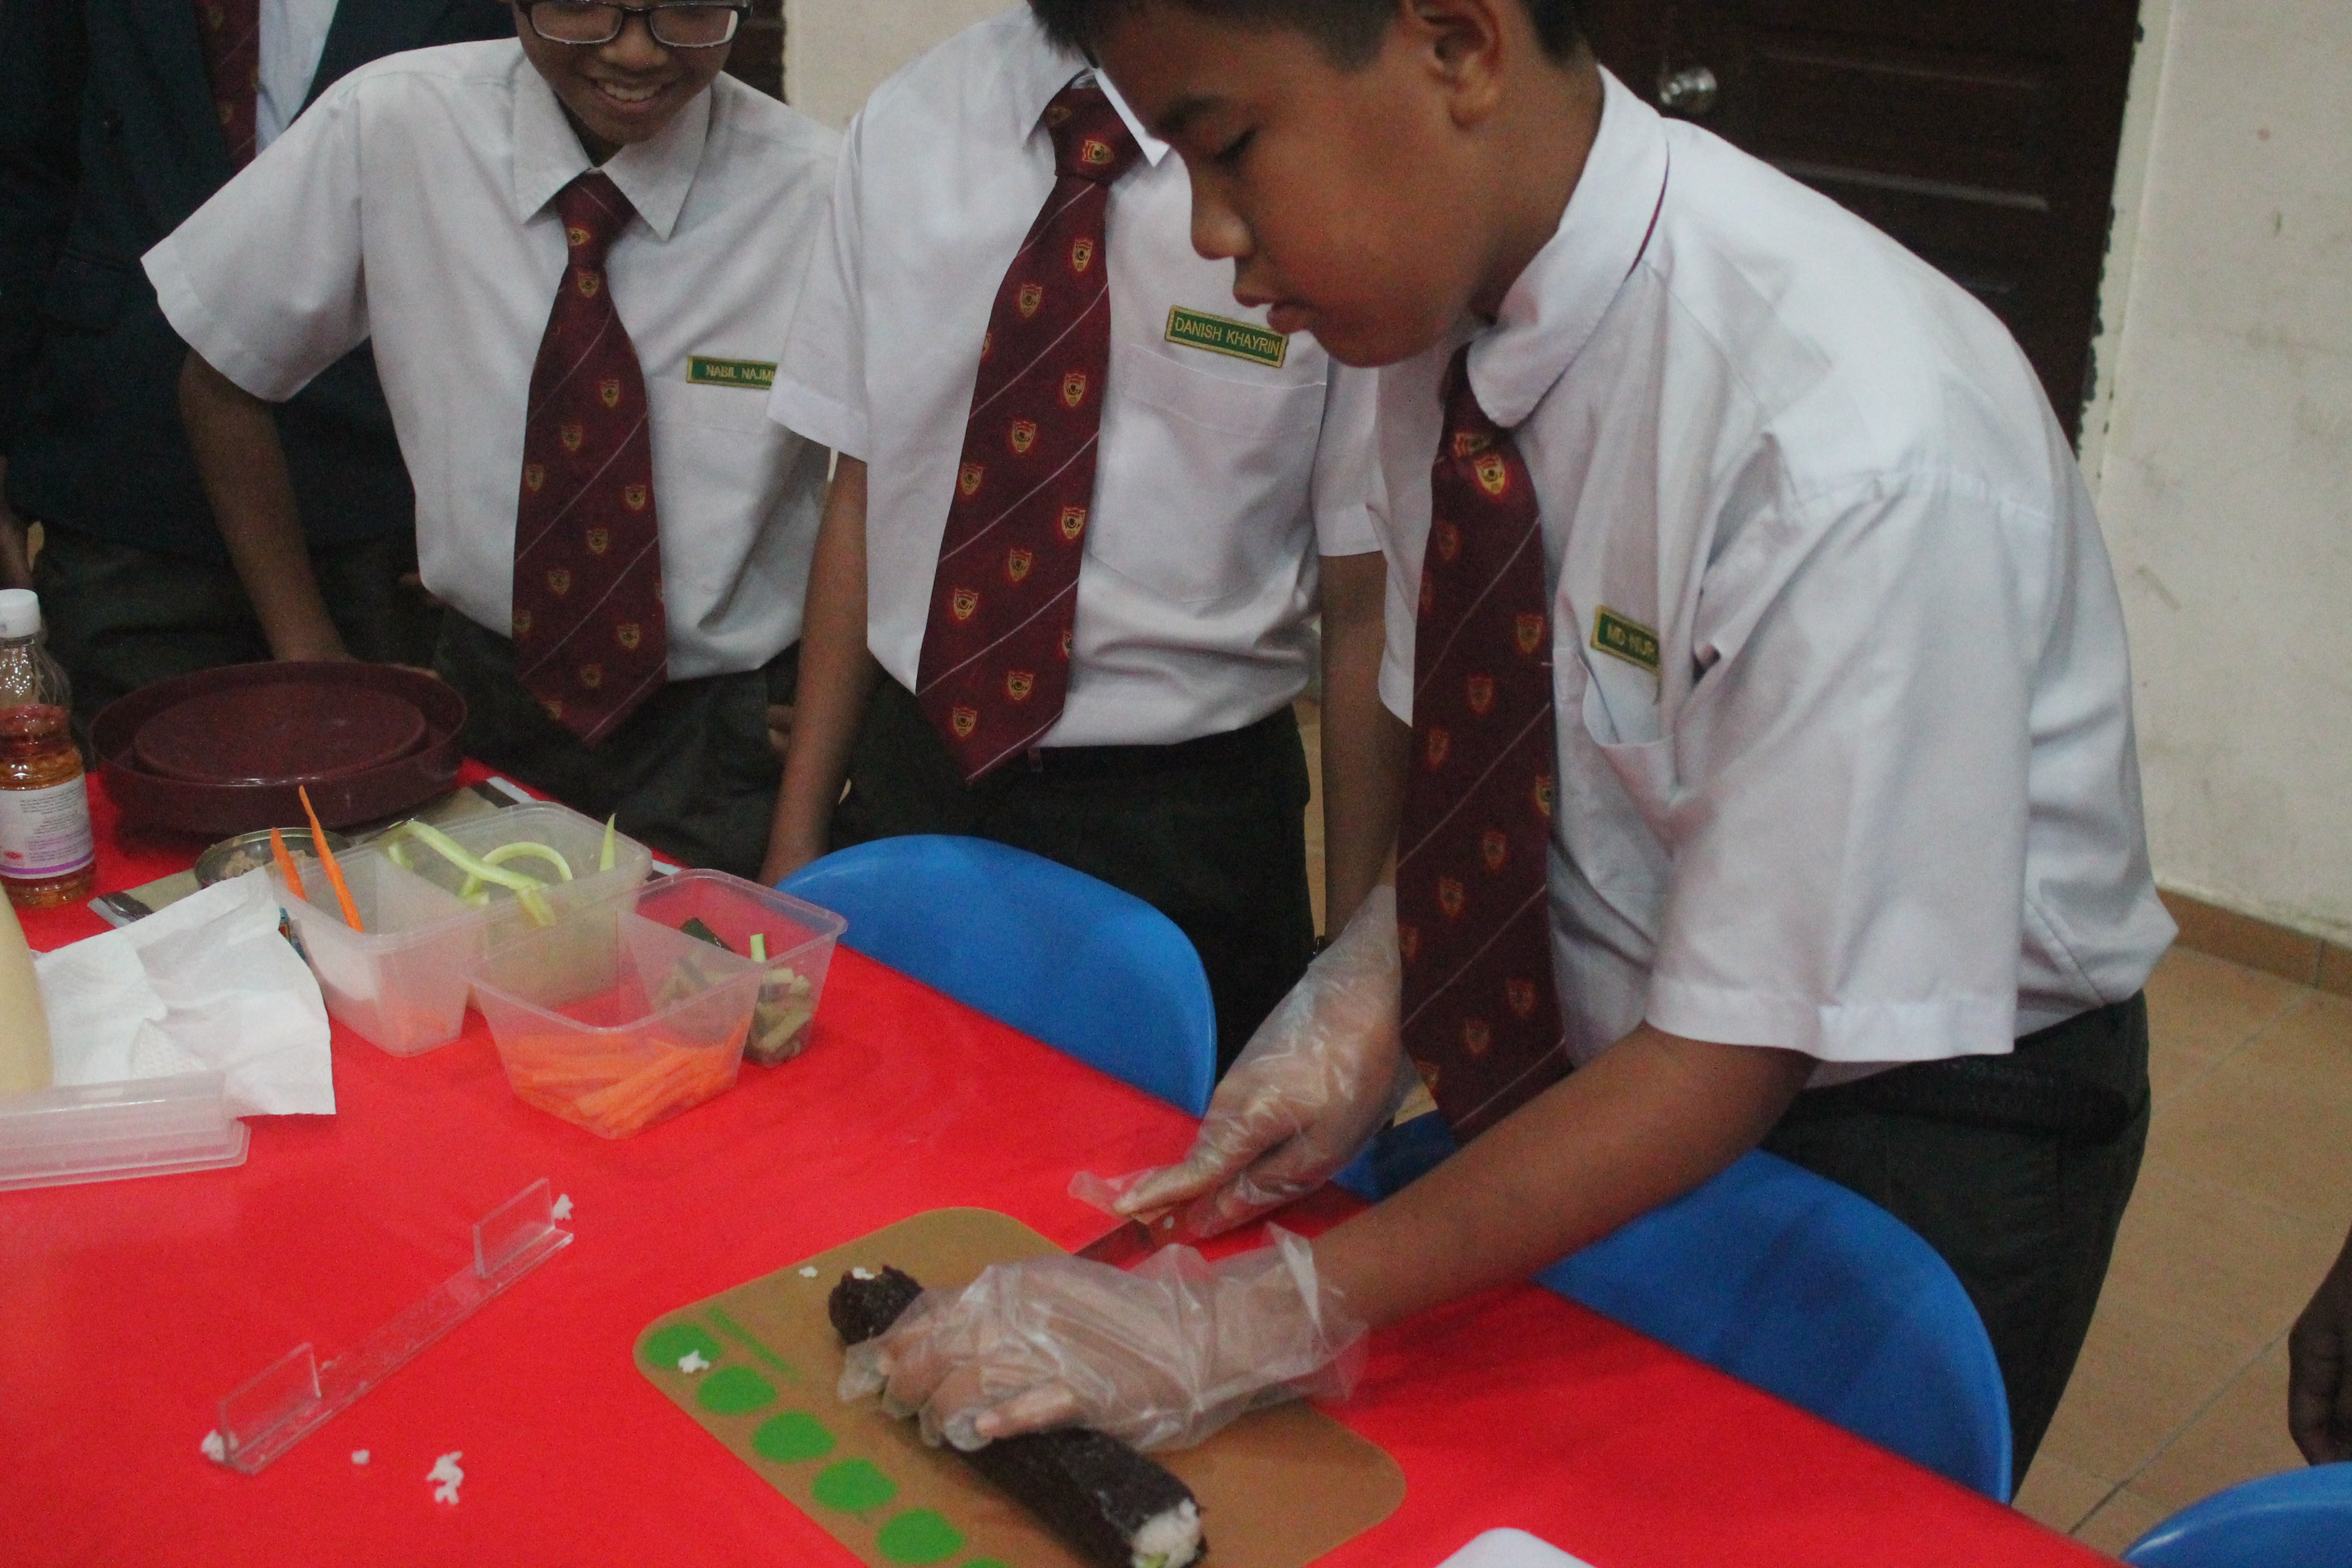 Sekolah Dato' Abdul Razak- What is <strong>Project Based Learning</strong> (PBL)? <strong>Project Based Learning</strong> is a teaching method in which students gain knowledge and skills by working for an extended period of time to investigate and respond to an authentic, engaging and complex que